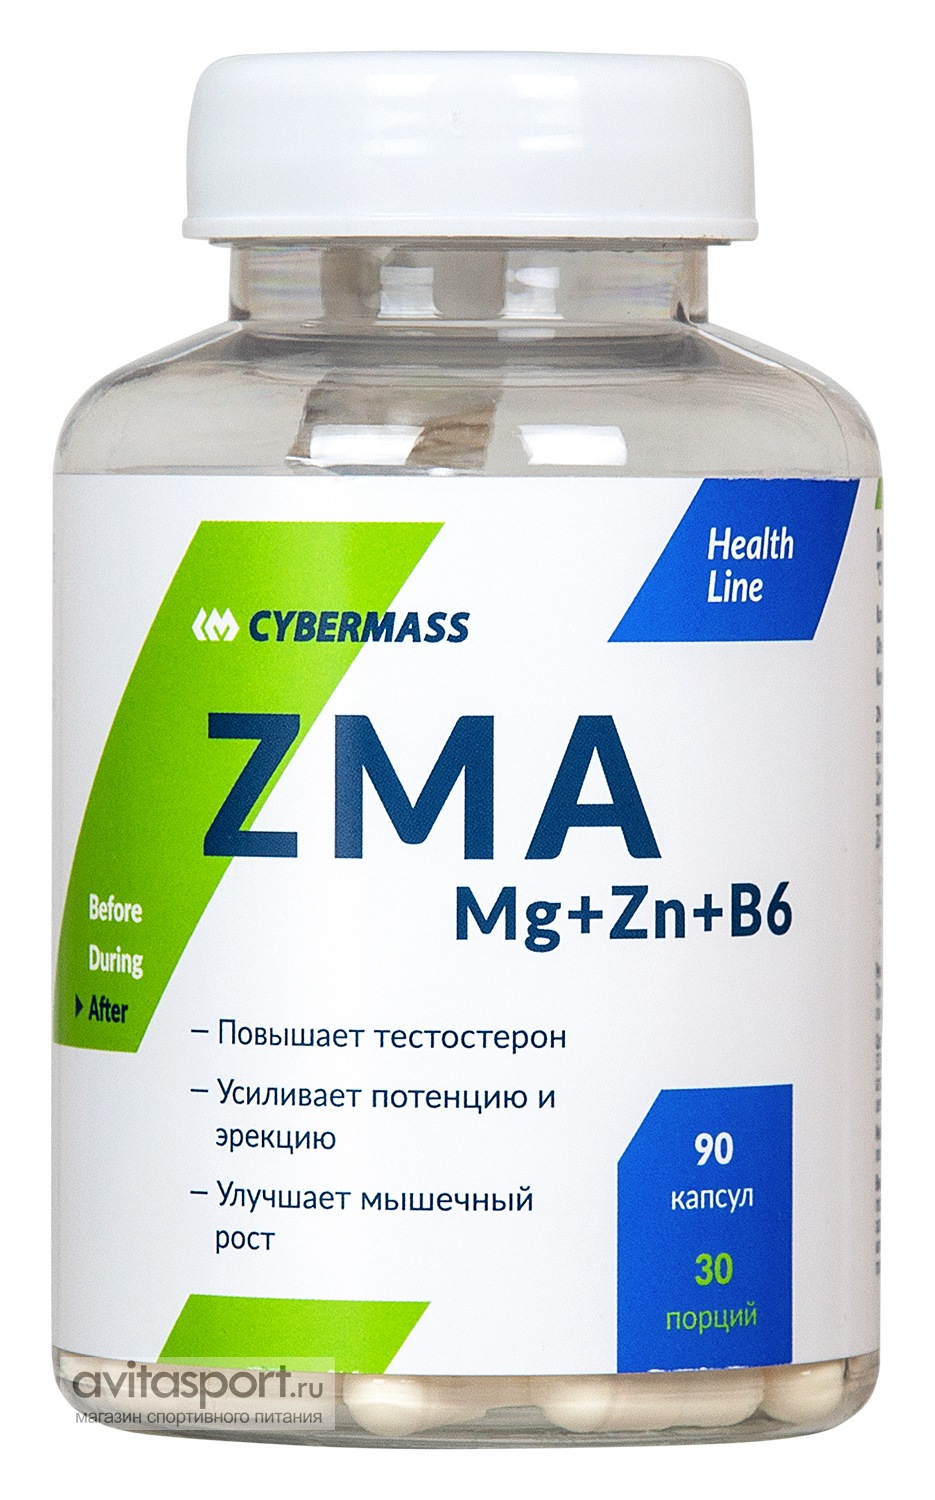 CyberMass ZMA Mg+Zn+B6 90 капсул